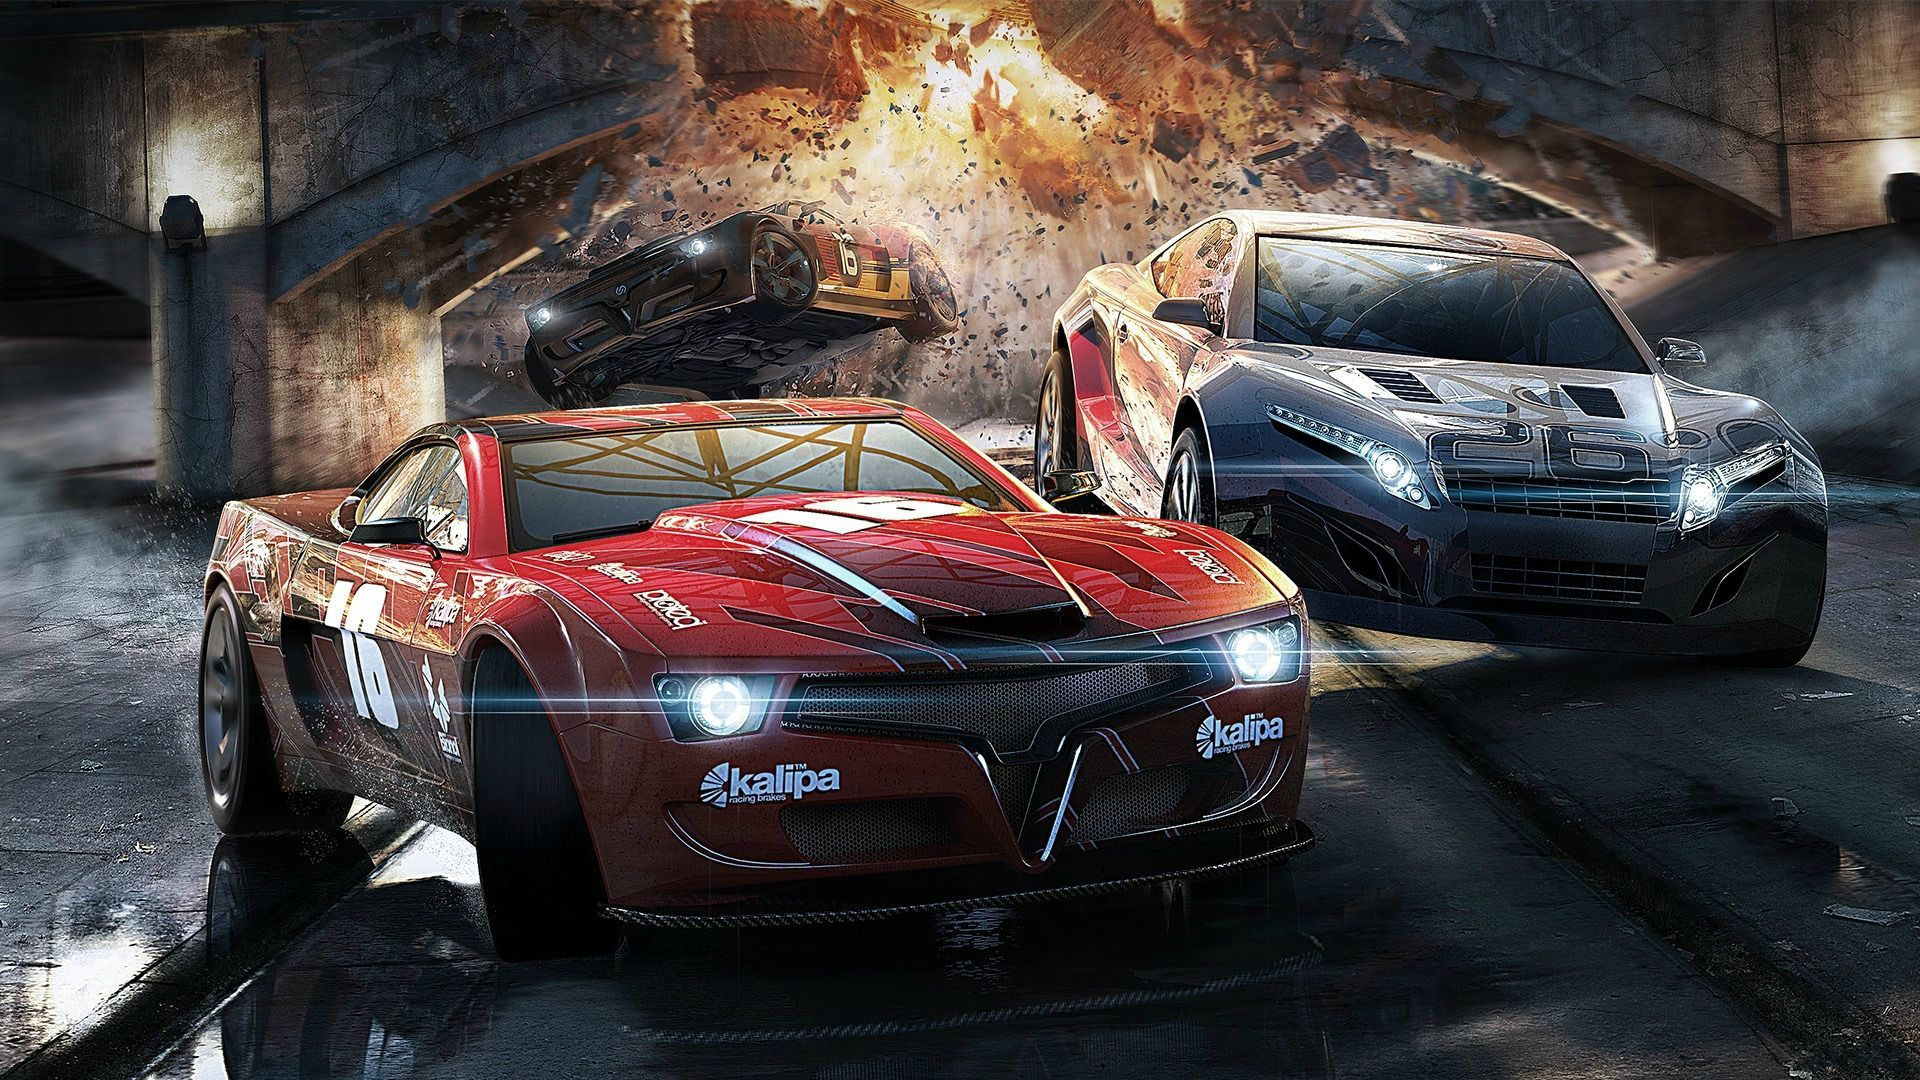 street racing cars pictures and wallpaper for desktop